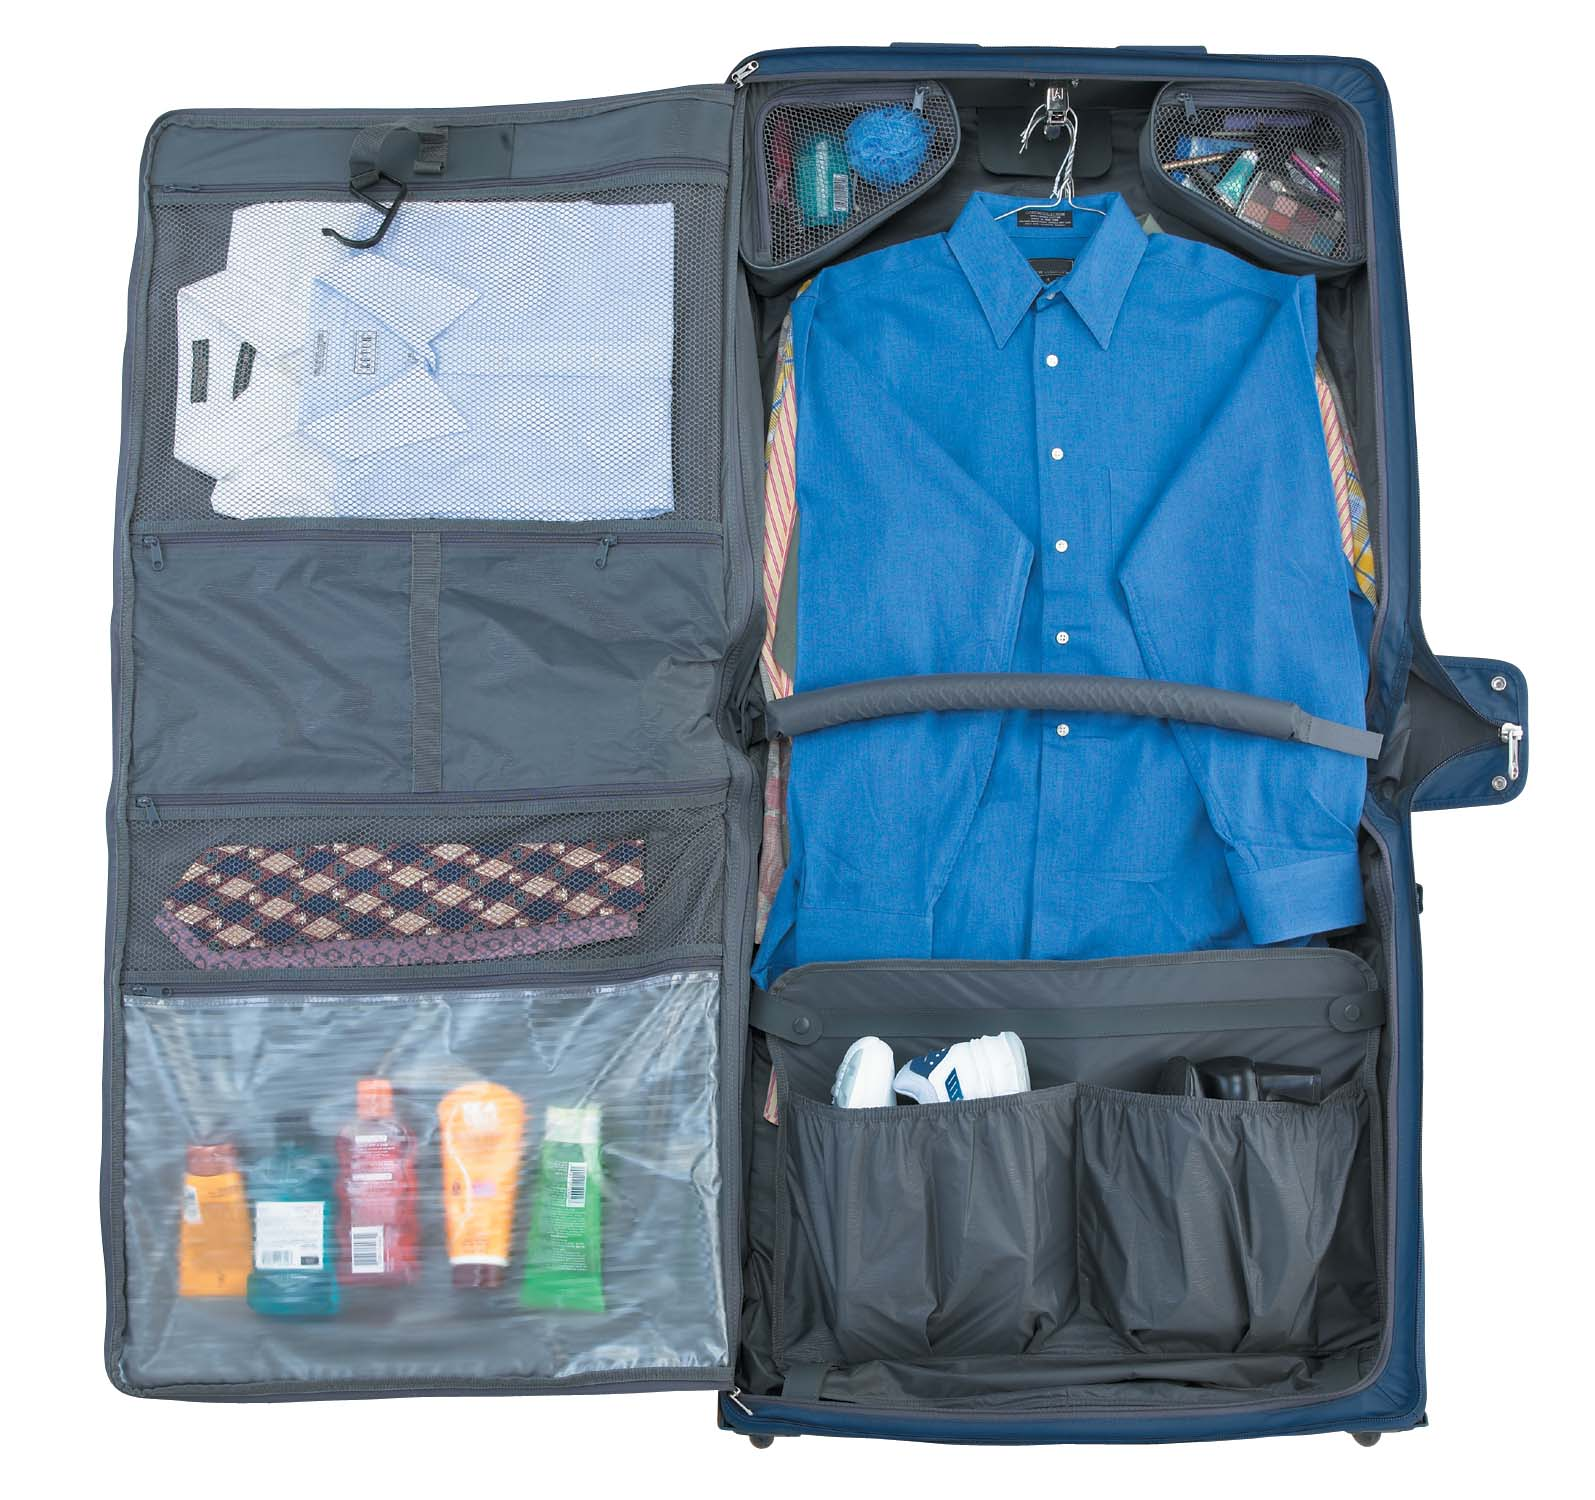 Ng The Travelpro Rolling Garment Bag